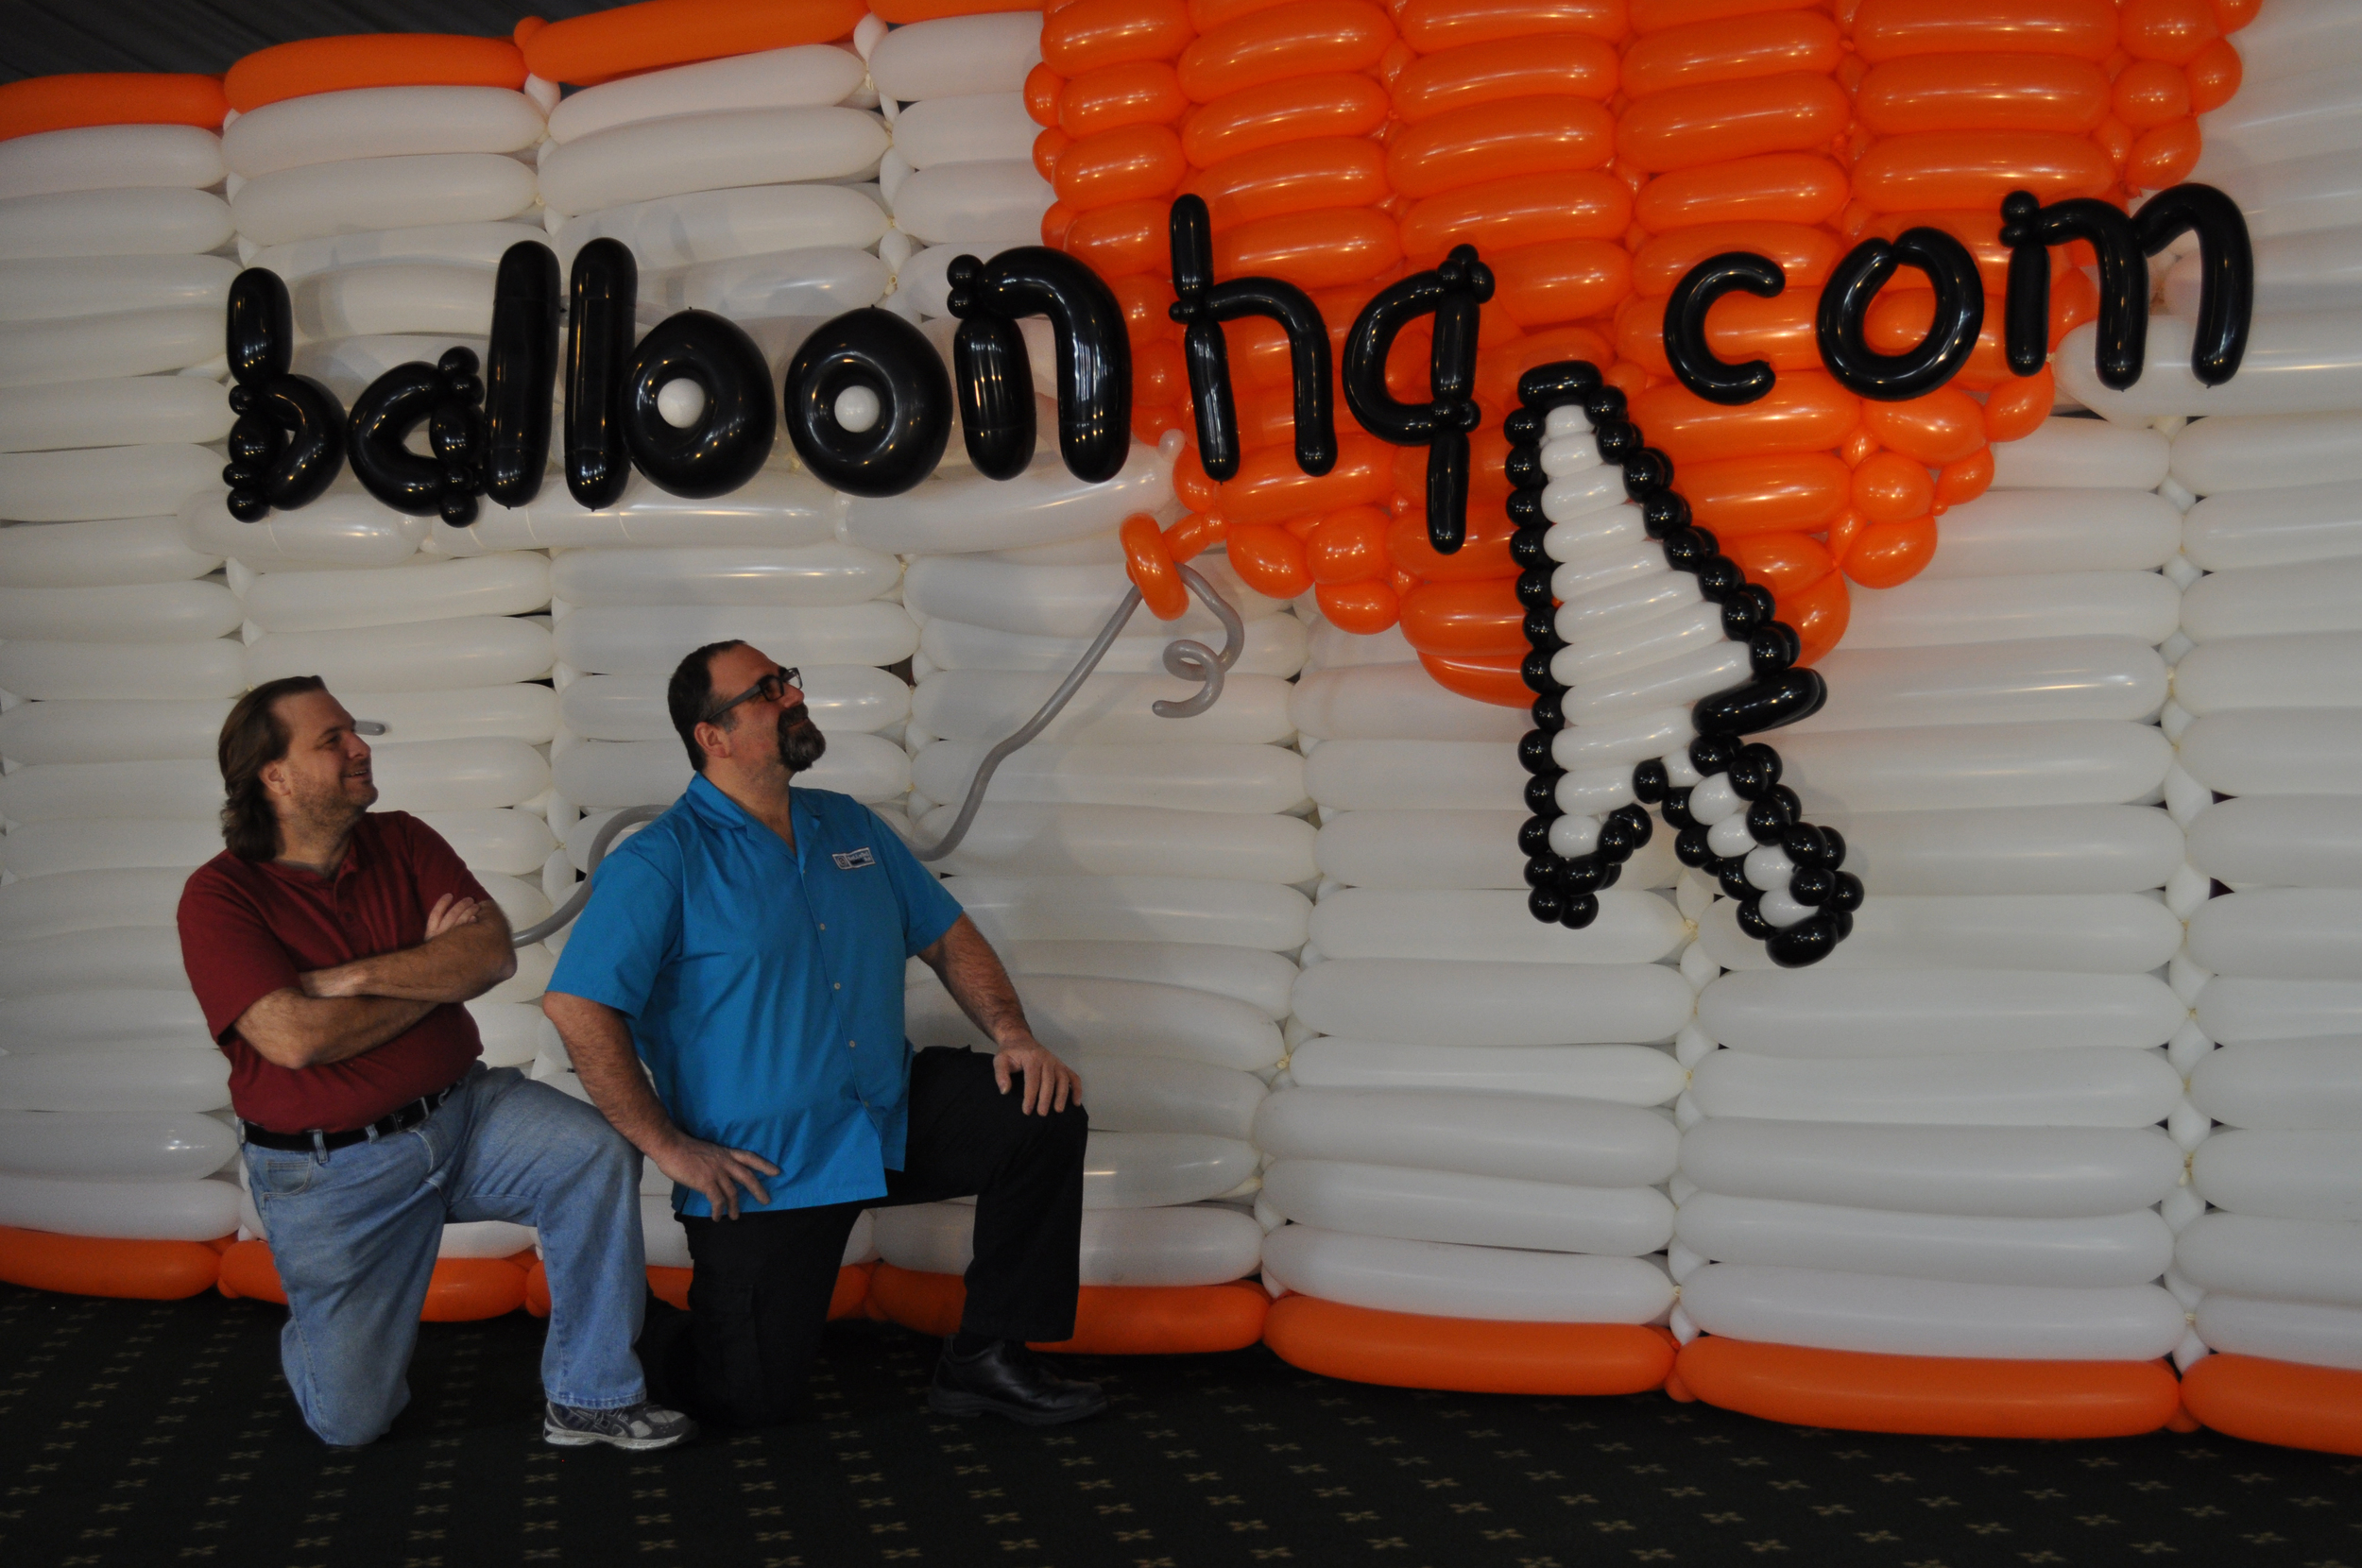 """Balloon artist Brian Asman and myself. Brian designeda giant balloon version of the """"balloonhq.com"""" logo; and it was a blast being a part of the crew that built it!Brian was a star ofthe TLC program """"The Unpoppables""""."""